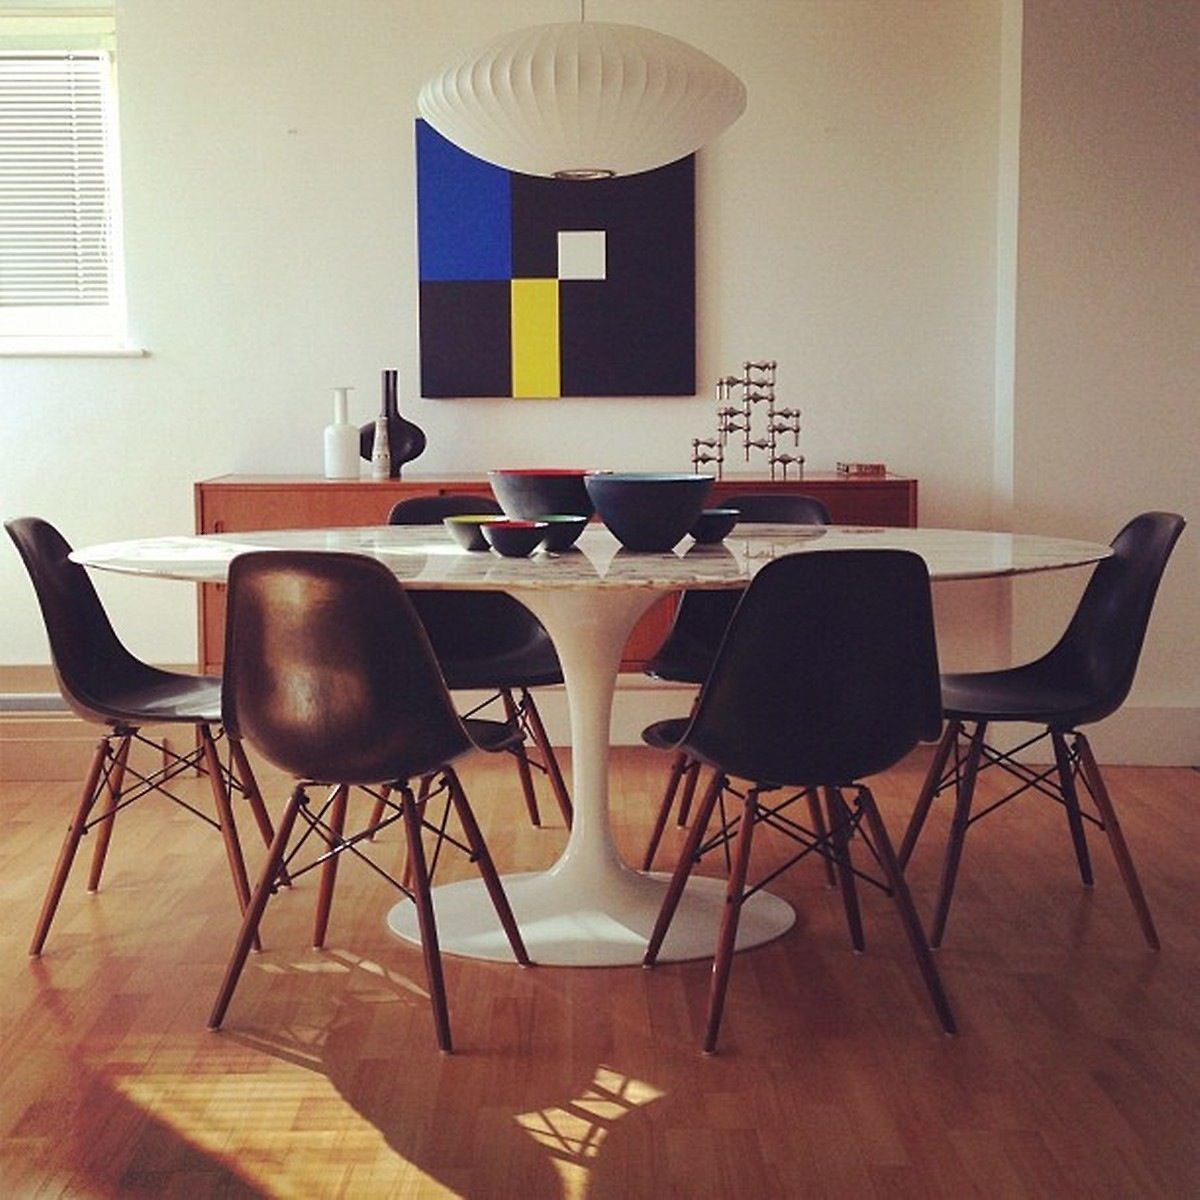 Mesa Tulip Replica Mcm Dining Black Reproduction Eames Fiberglass Chairs